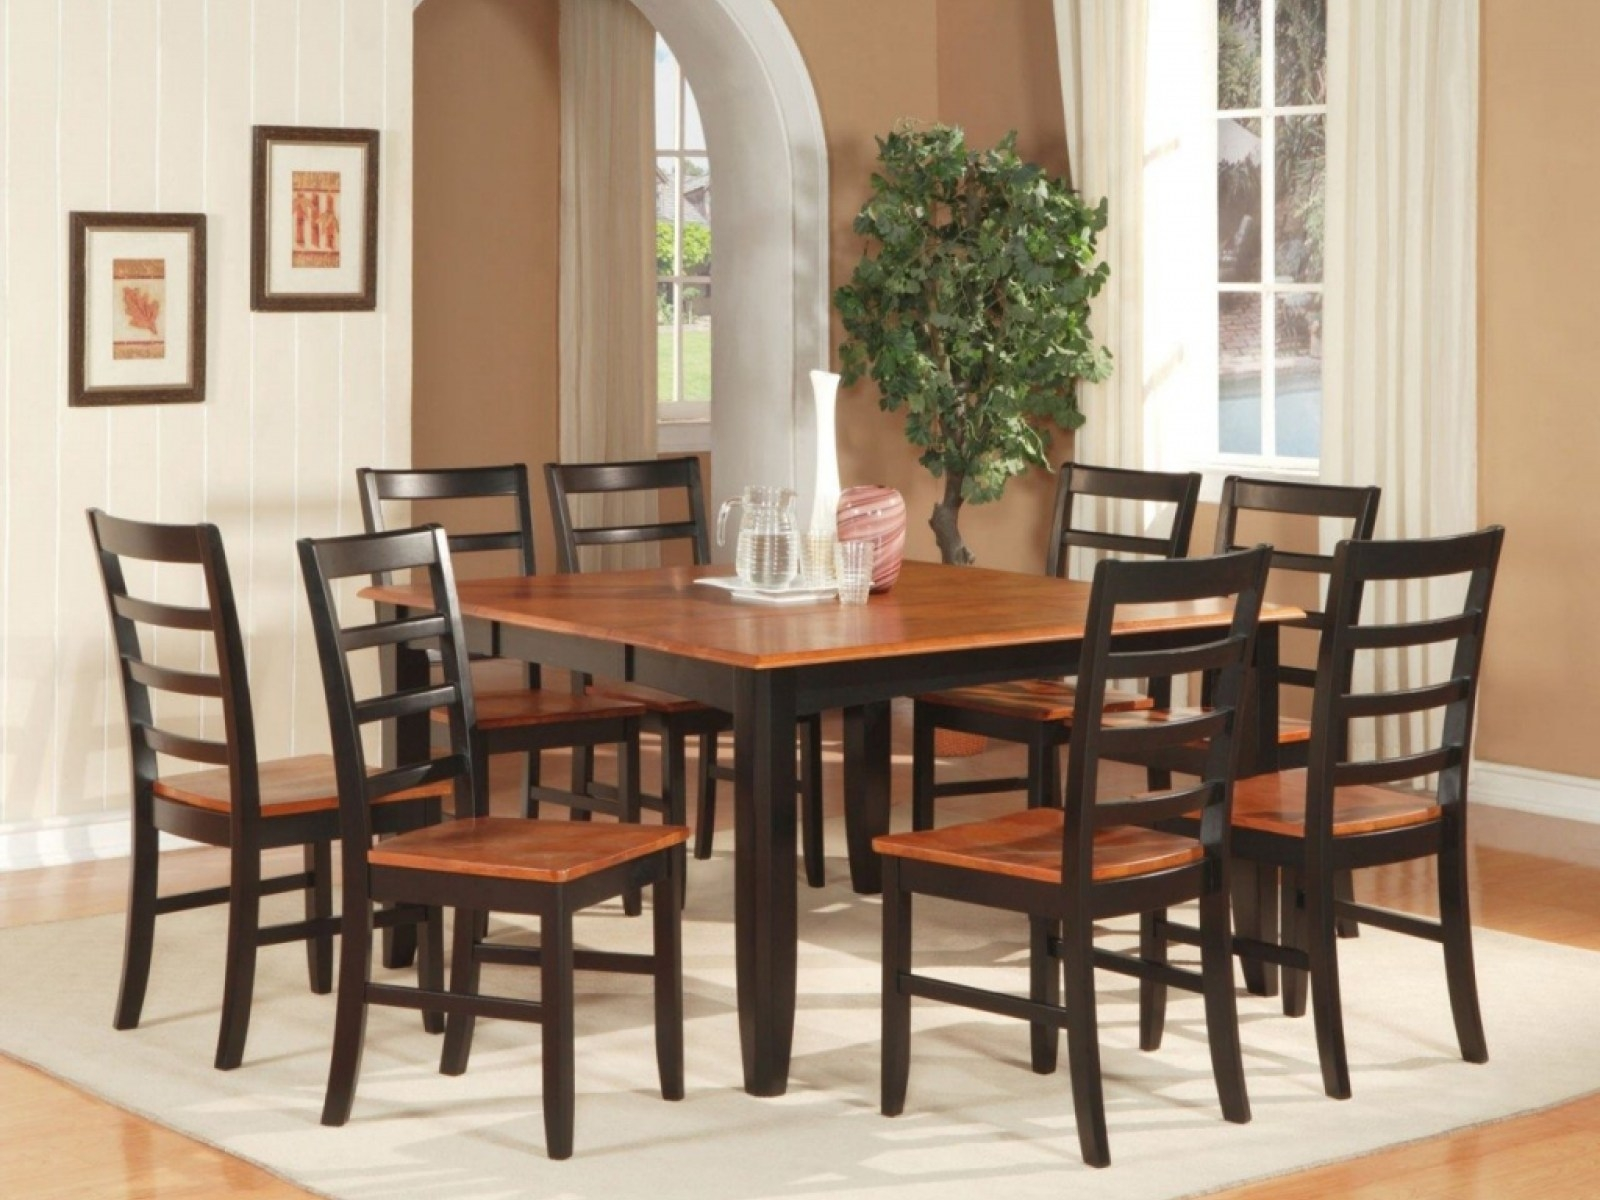 Permalink to Kmart High Kitchen Table Sets